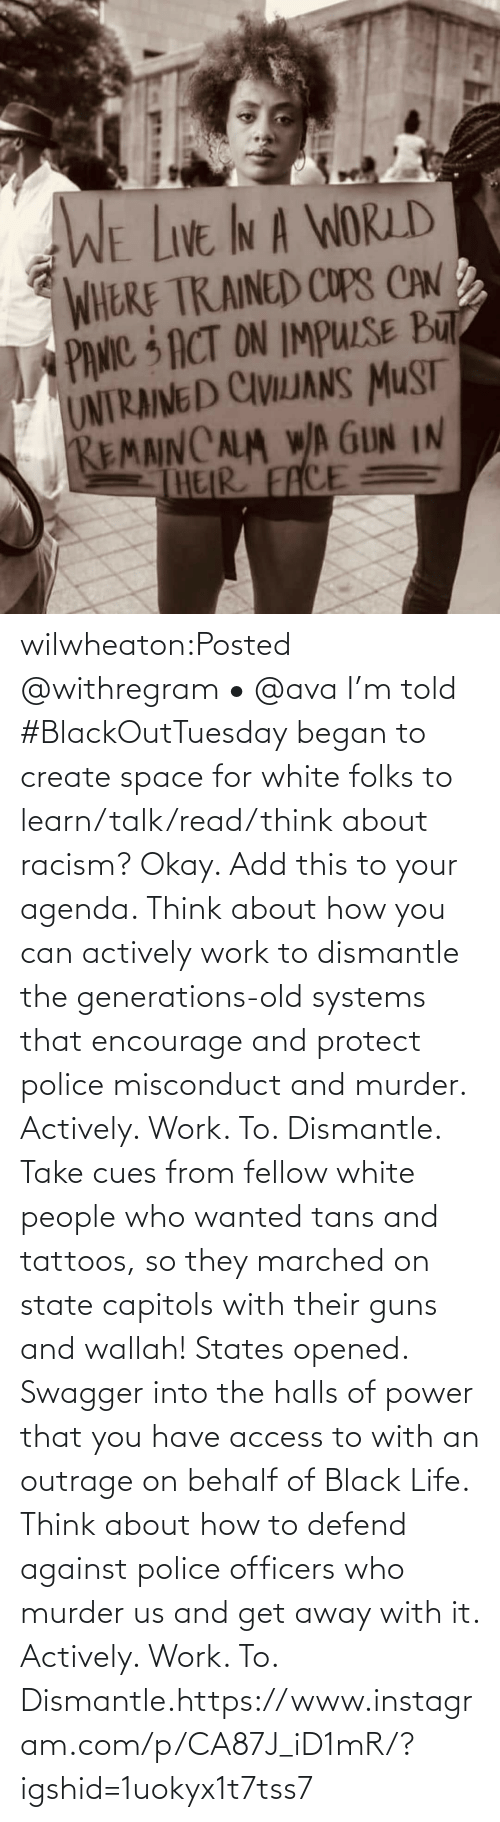 create: wilwheaton:Posted @withregram • @ava I'm told #BlackOutTuesday began to create space for white folks to learn/talk/read/think about racism? Okay. Add this to your agenda. Think about how you can actively work to dismantle the generations-old systems that encourage and protect police misconduct and murder. Actively. Work. To. Dismantle. Take cues from fellow white people who wanted tans and tattoos, so they marched on state capitols with their guns and wallah! States opened. Swagger into the halls of power that you have access to with an outrage on behalf of Black Life. Think about how to defend against police officers who murder us and get away with it. Actively. Work. To. Dismantle.https://www.instagram.com/p/CA87J_iD1mR/?igshid=1uokyx1t7tss7